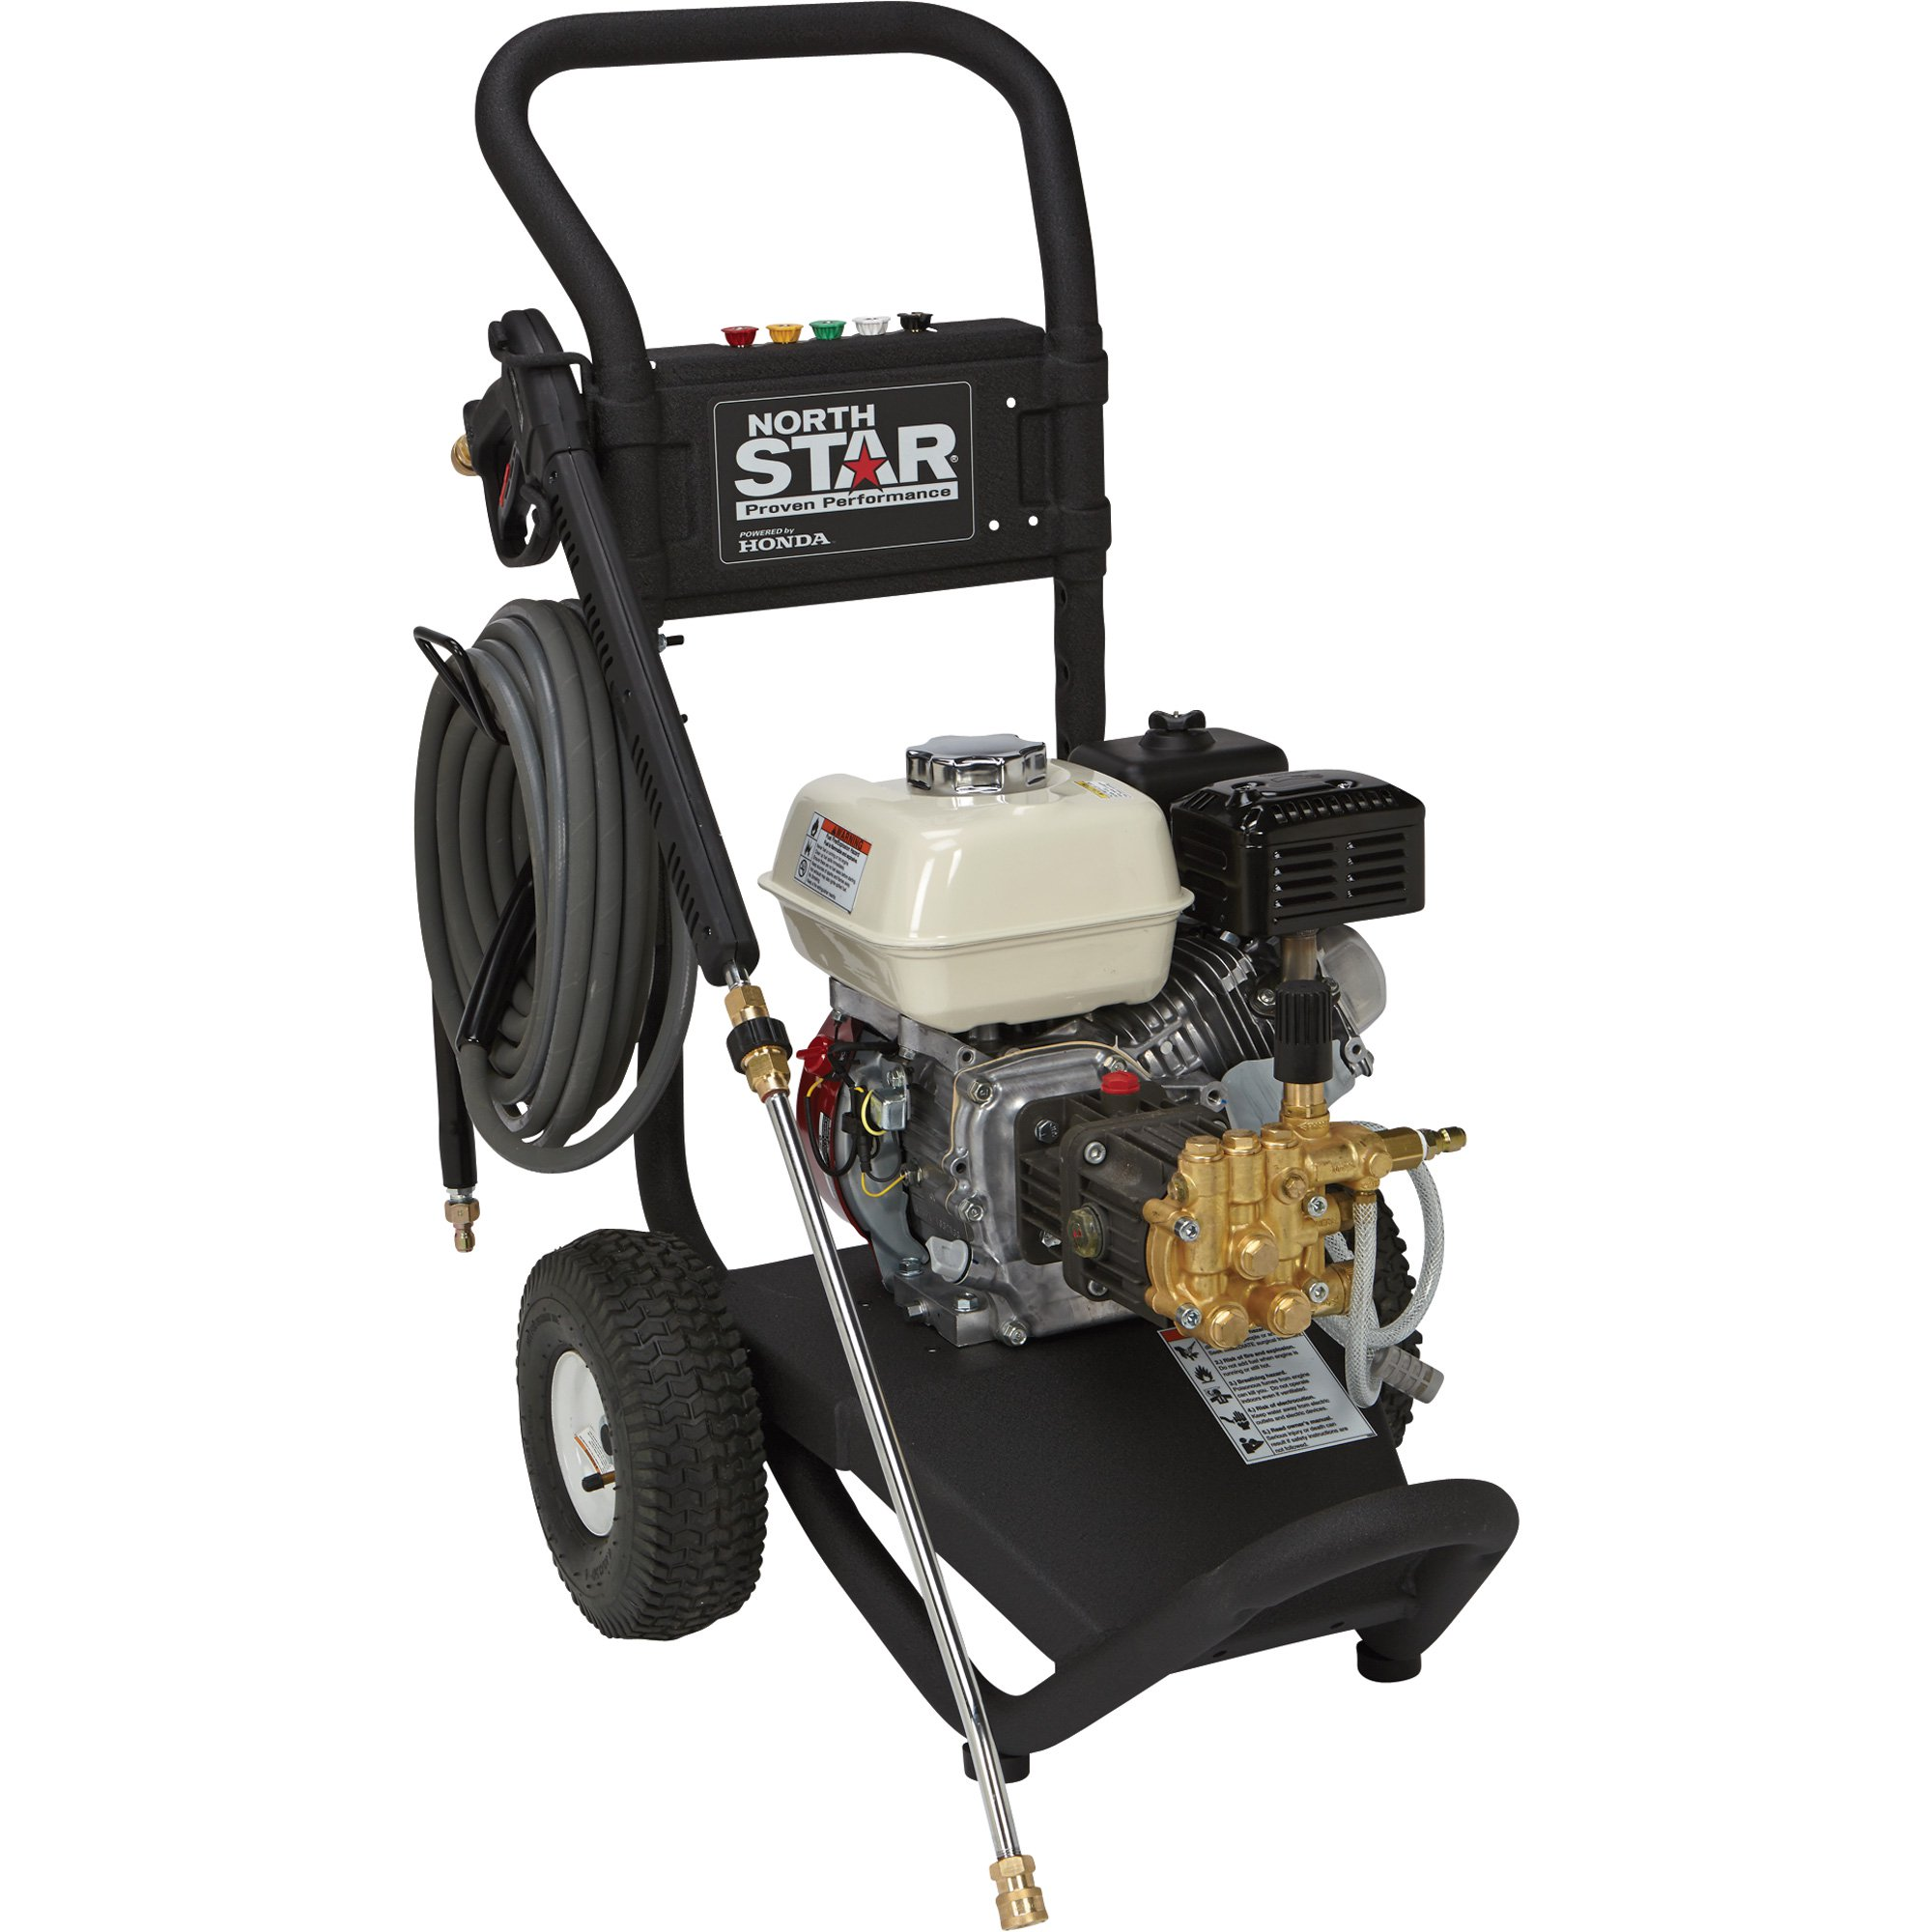 NorthStar 15781120 Gas Cold Water Pressure Washer 3000 PSI 2.5 GPM Honda Engine Freight Included